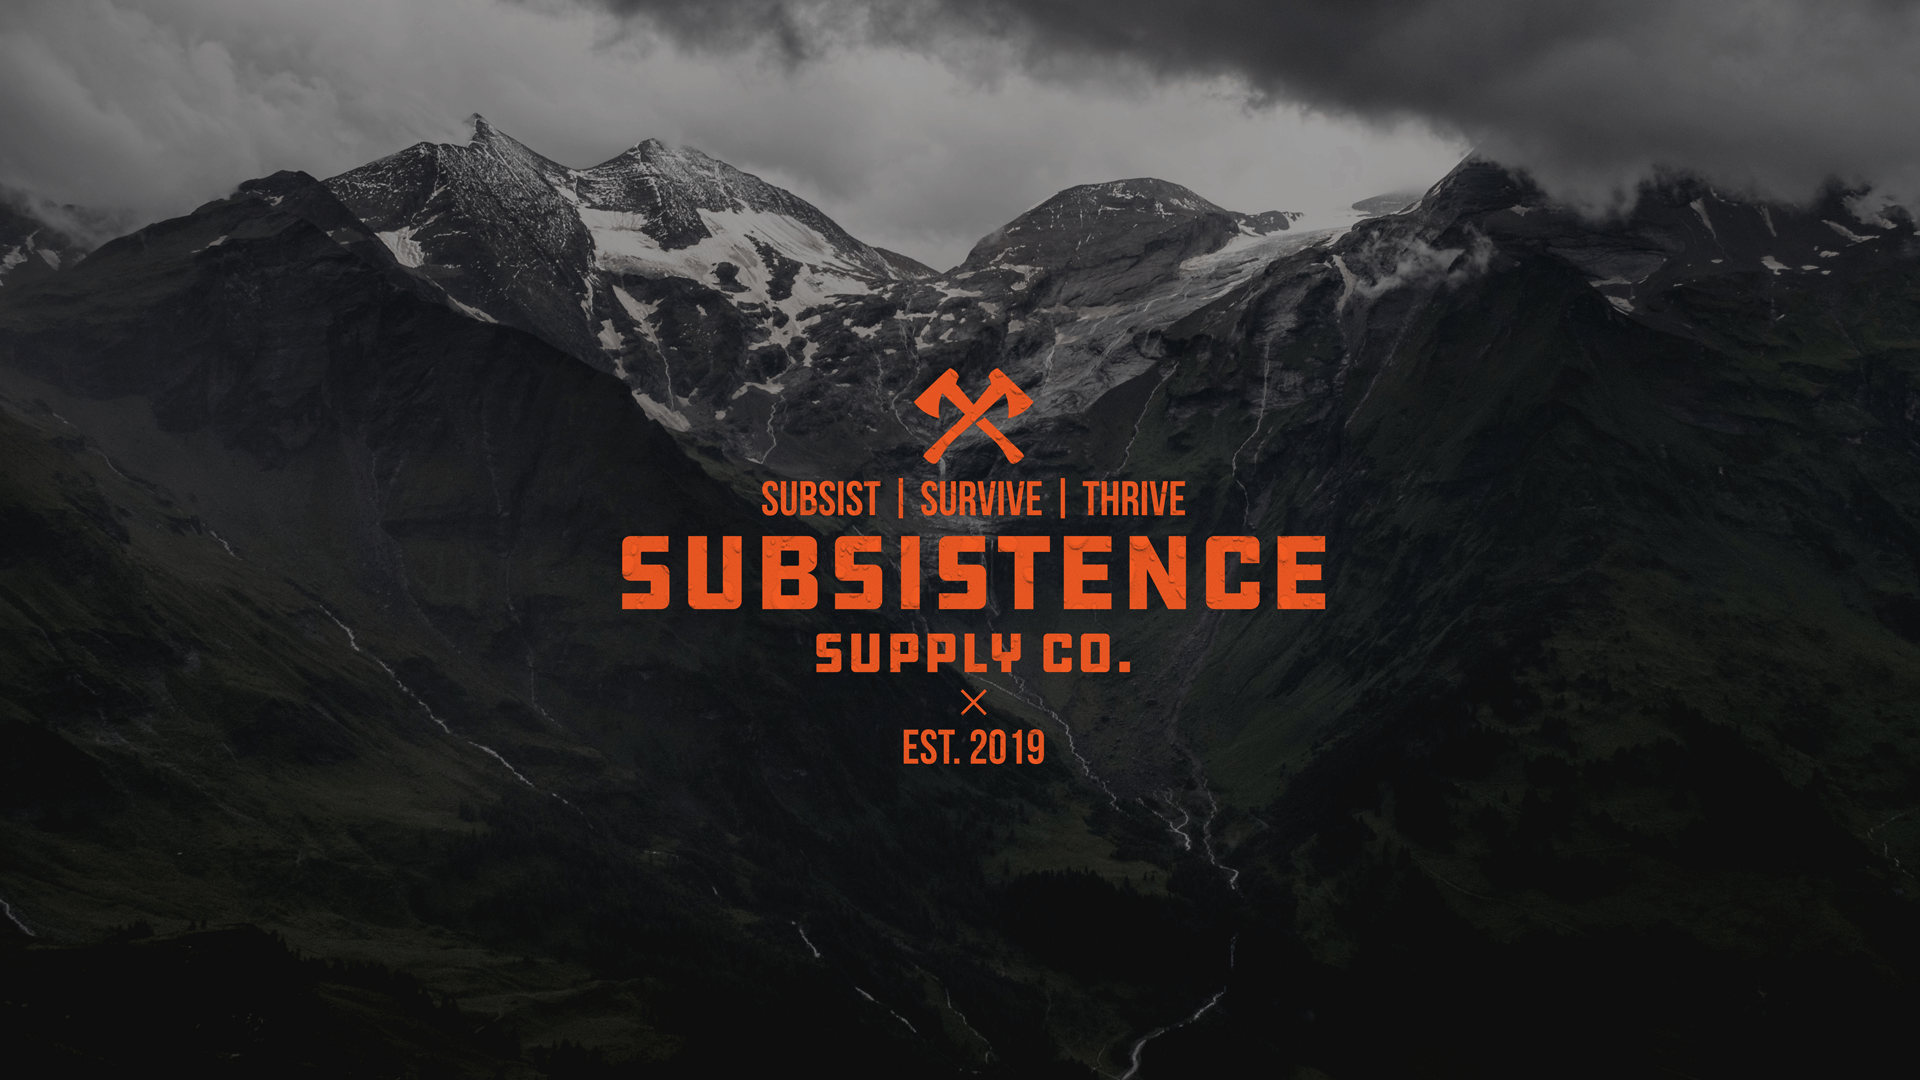 Subsistence Supply Company cover image featuring the logo and bold mountain backdrop